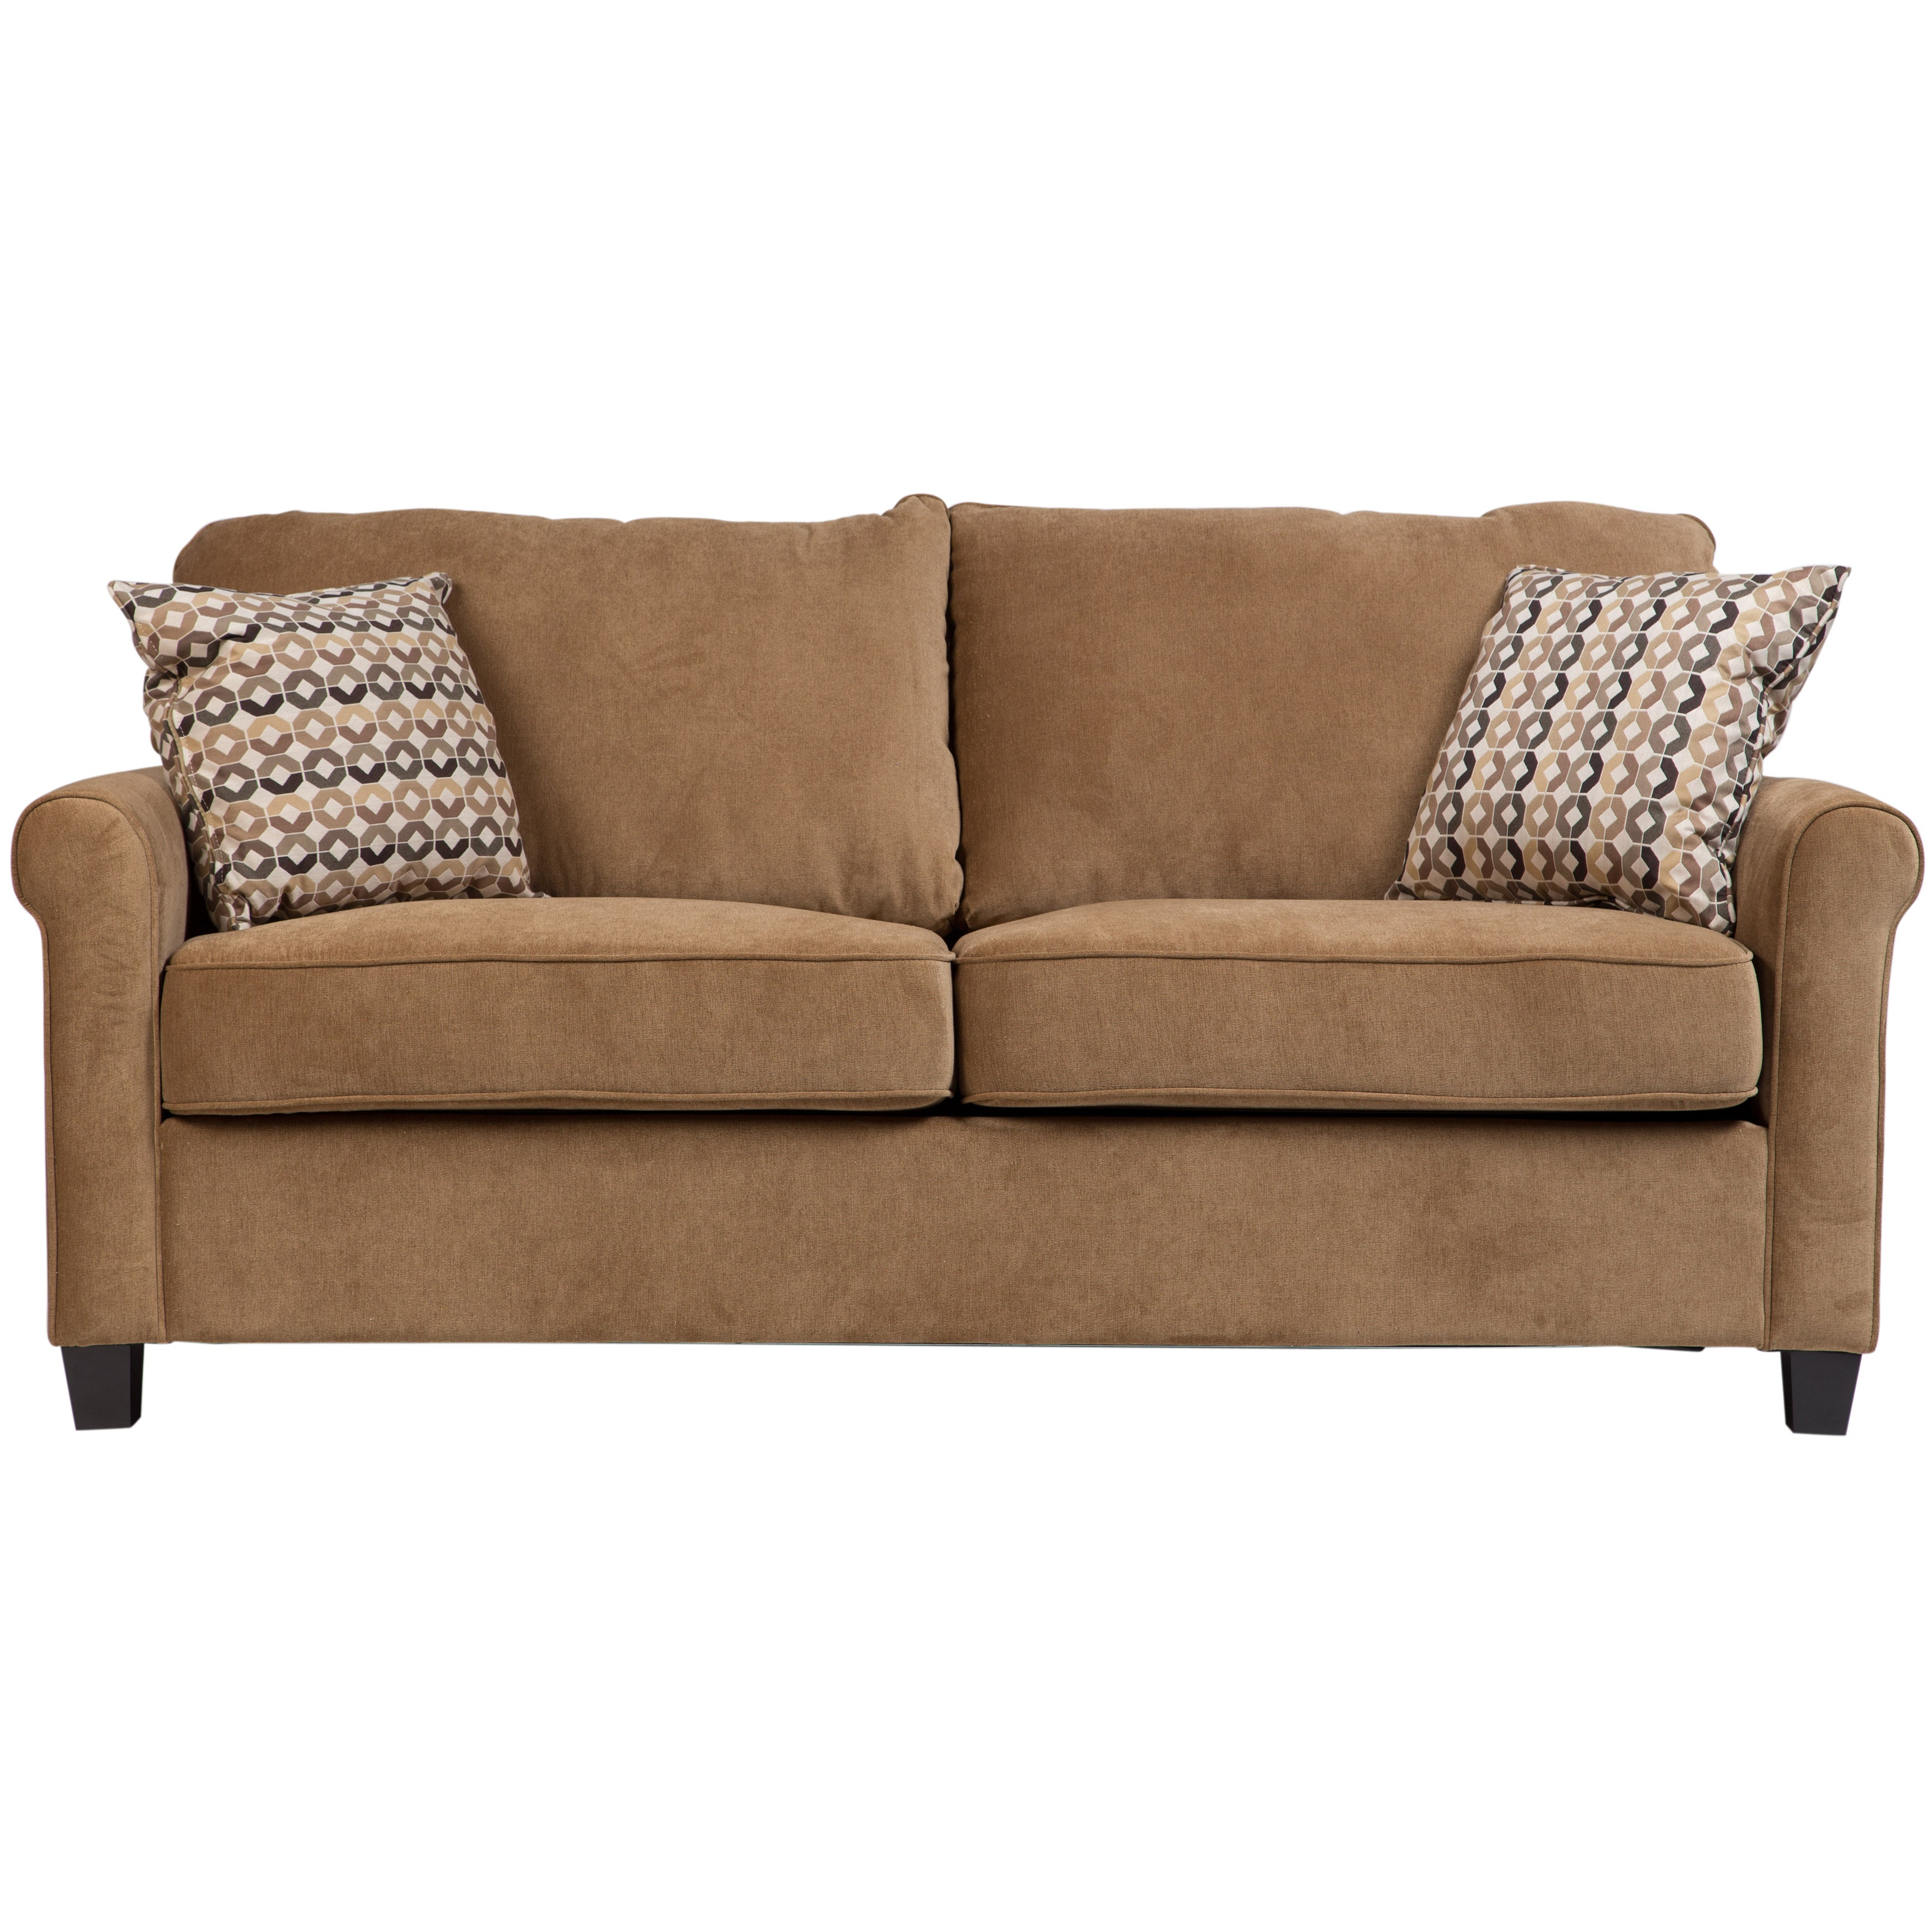 Peachy Buy Microfiber Sofas Couches Online At Overstock Our Pabps2019 Chair Design Images Pabps2019Com